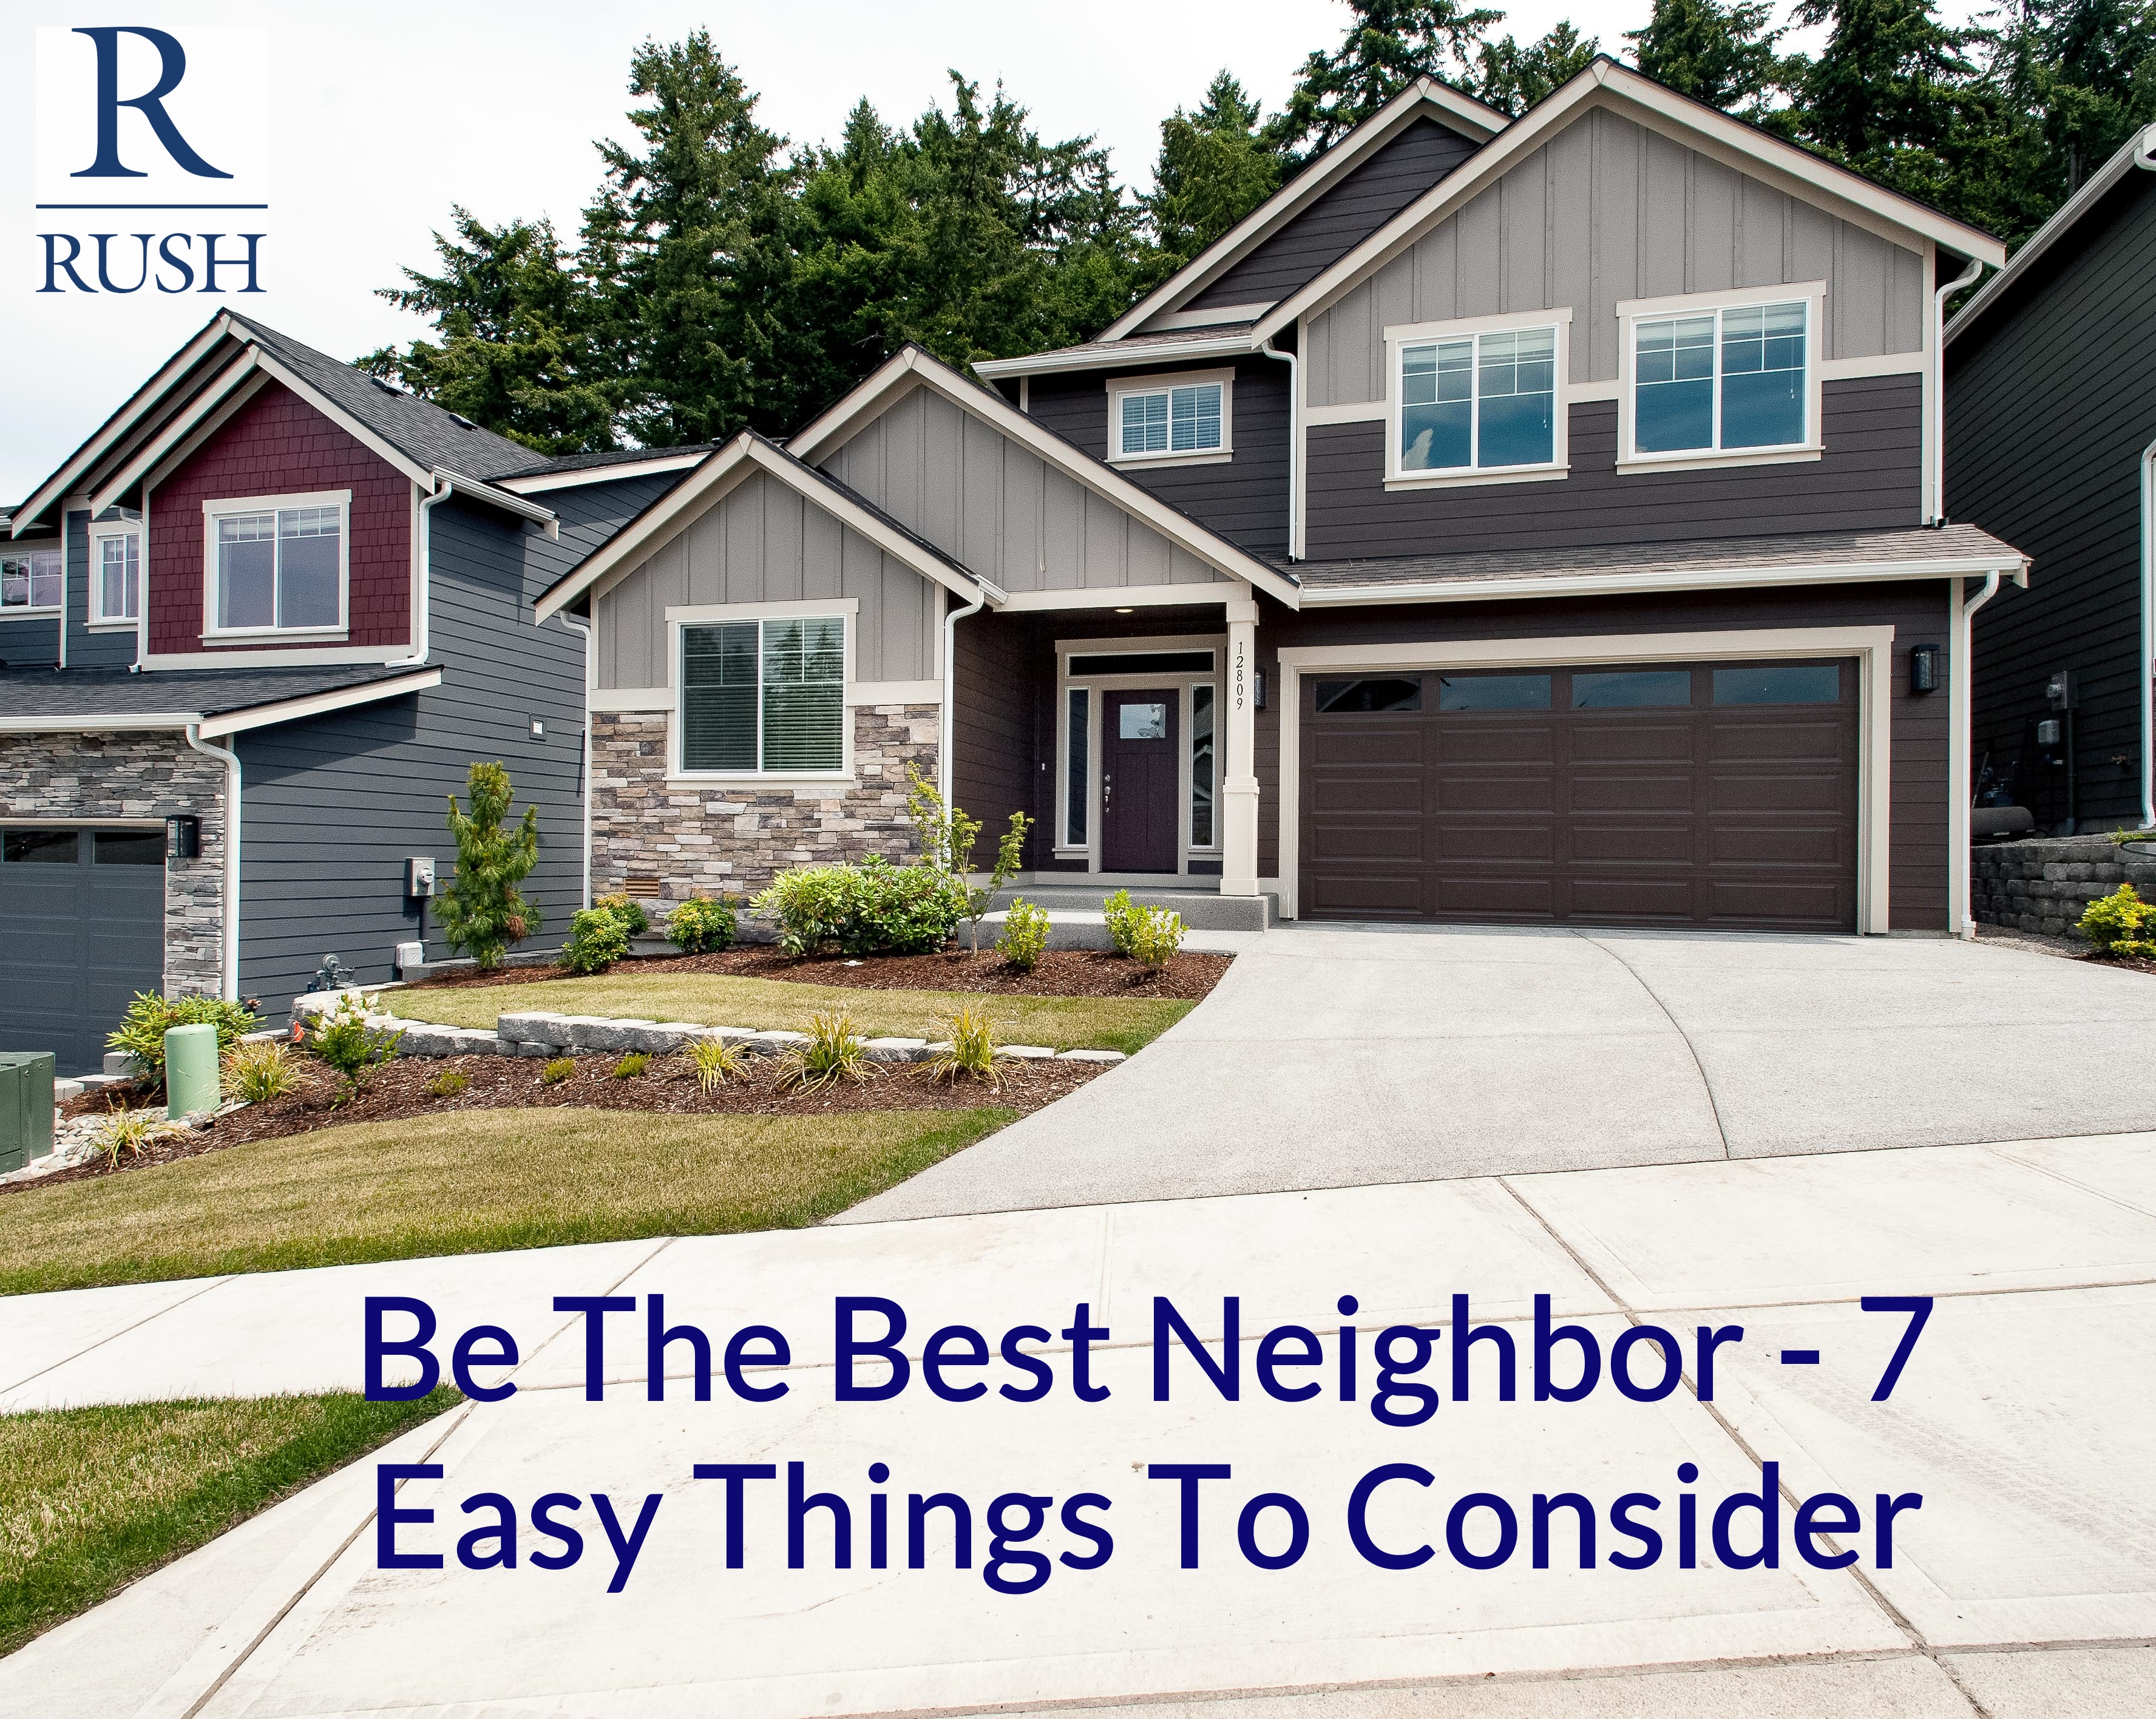 Be The Best Neighbor - 7 Easy Things To Consider